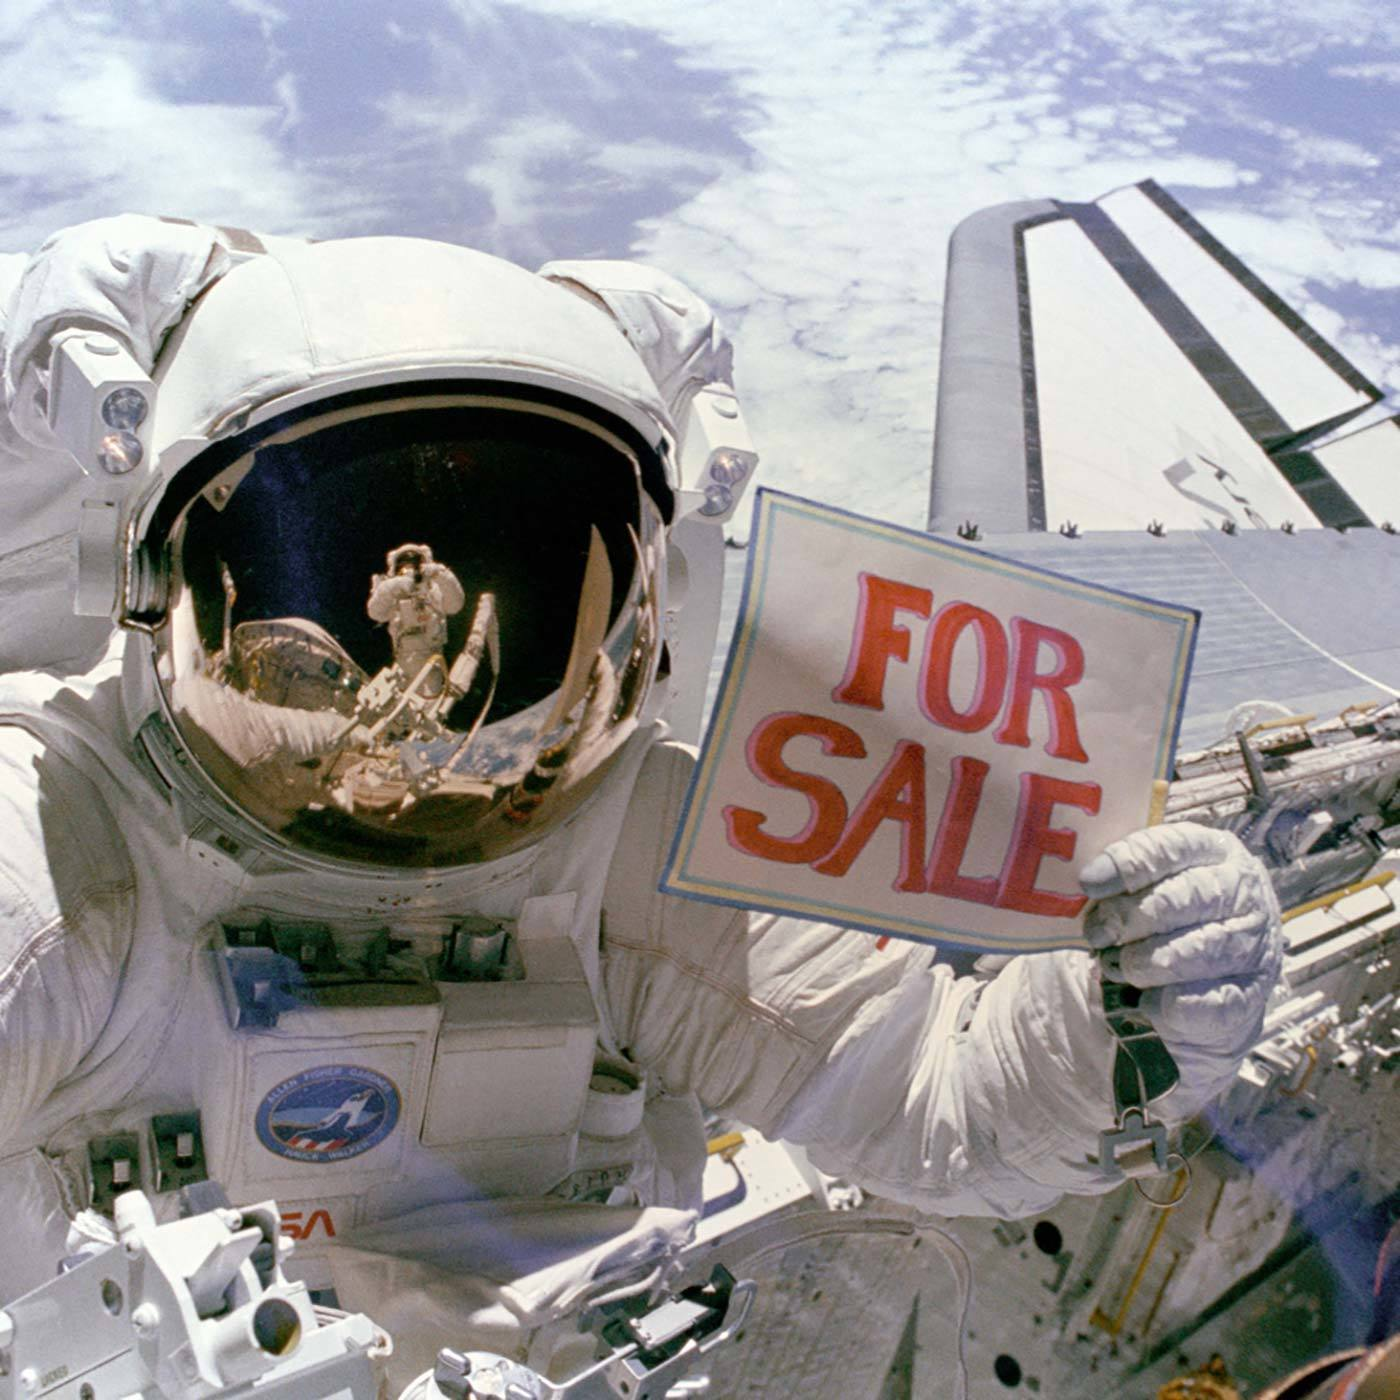 Selling Space, with Bill Nye